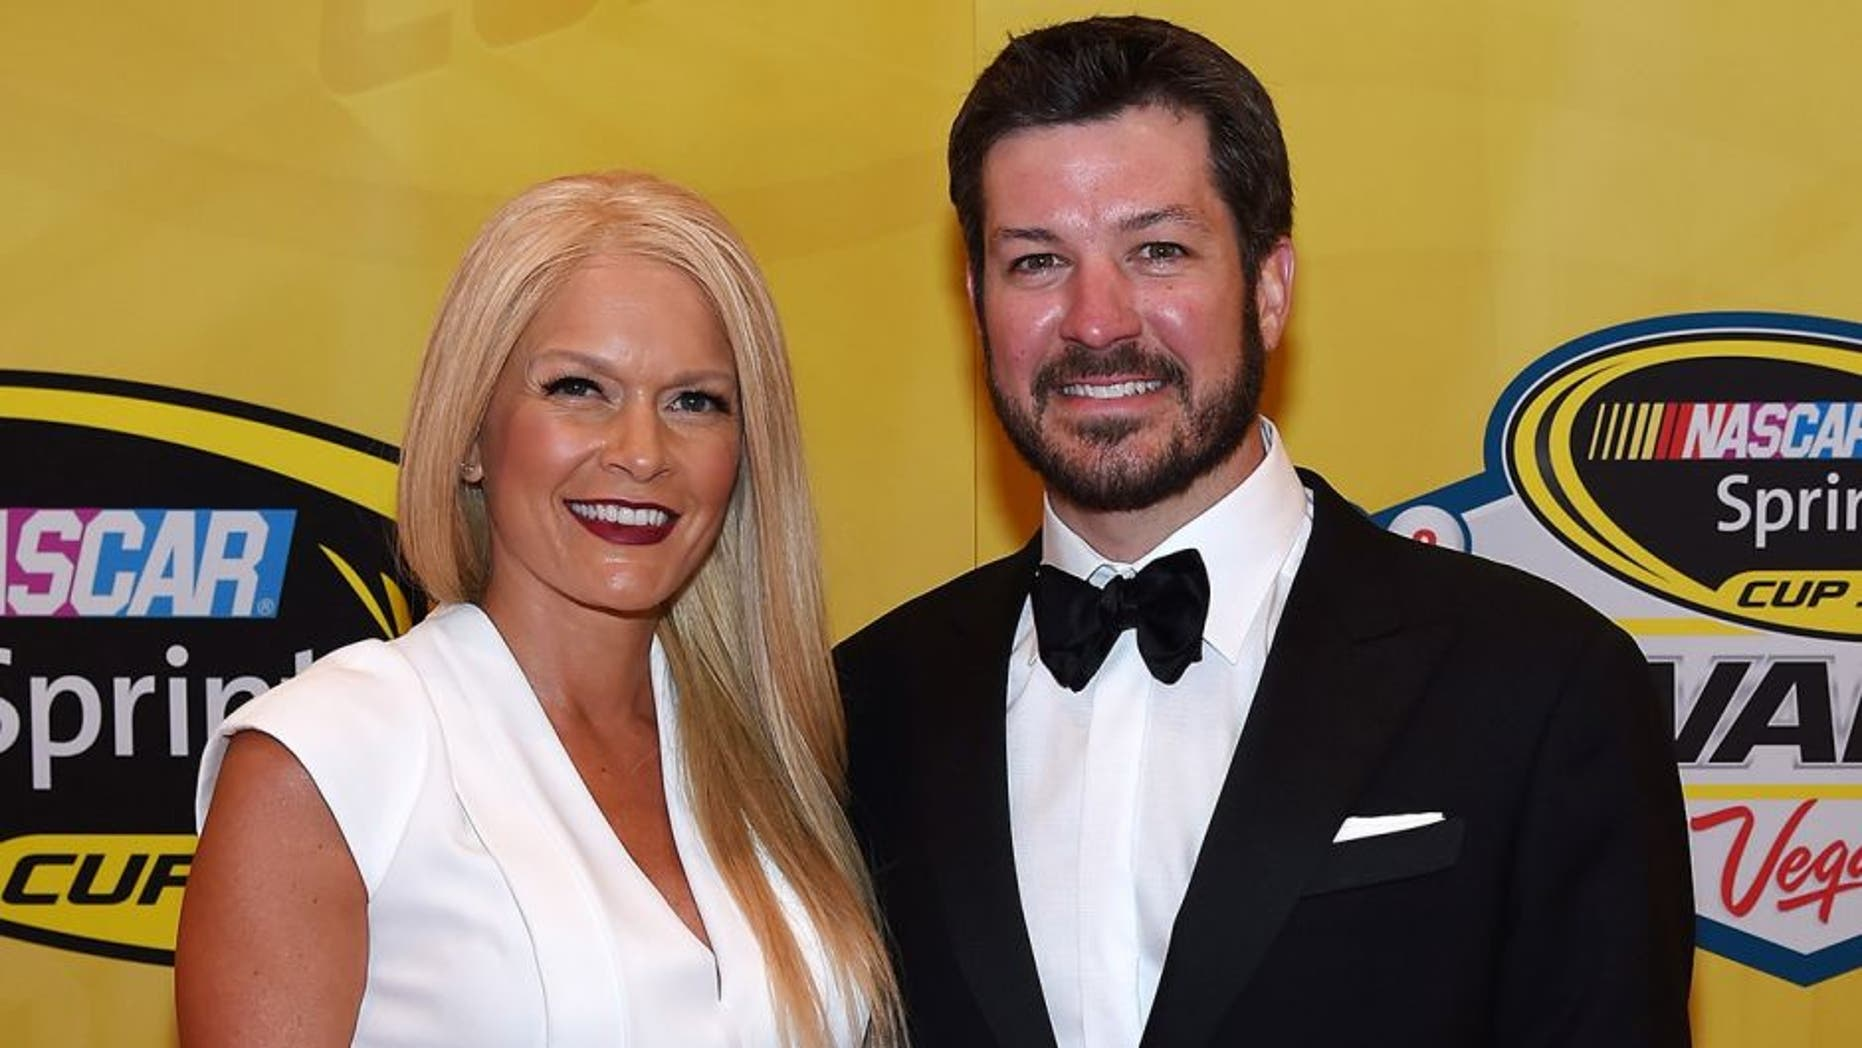 LAS VEGAS, NV - DECEMBER 04: Sherry Pollex (L) and NASCAR Sprint Cup Series driver Martin Truex Jr. attend the 2015 NASCAR Sprint Cup Series Awards at Wynn Las Vegas on December 4, 2015 in Las Vegas, Nevada. (Photo by Ethan Miller/Getty Images)